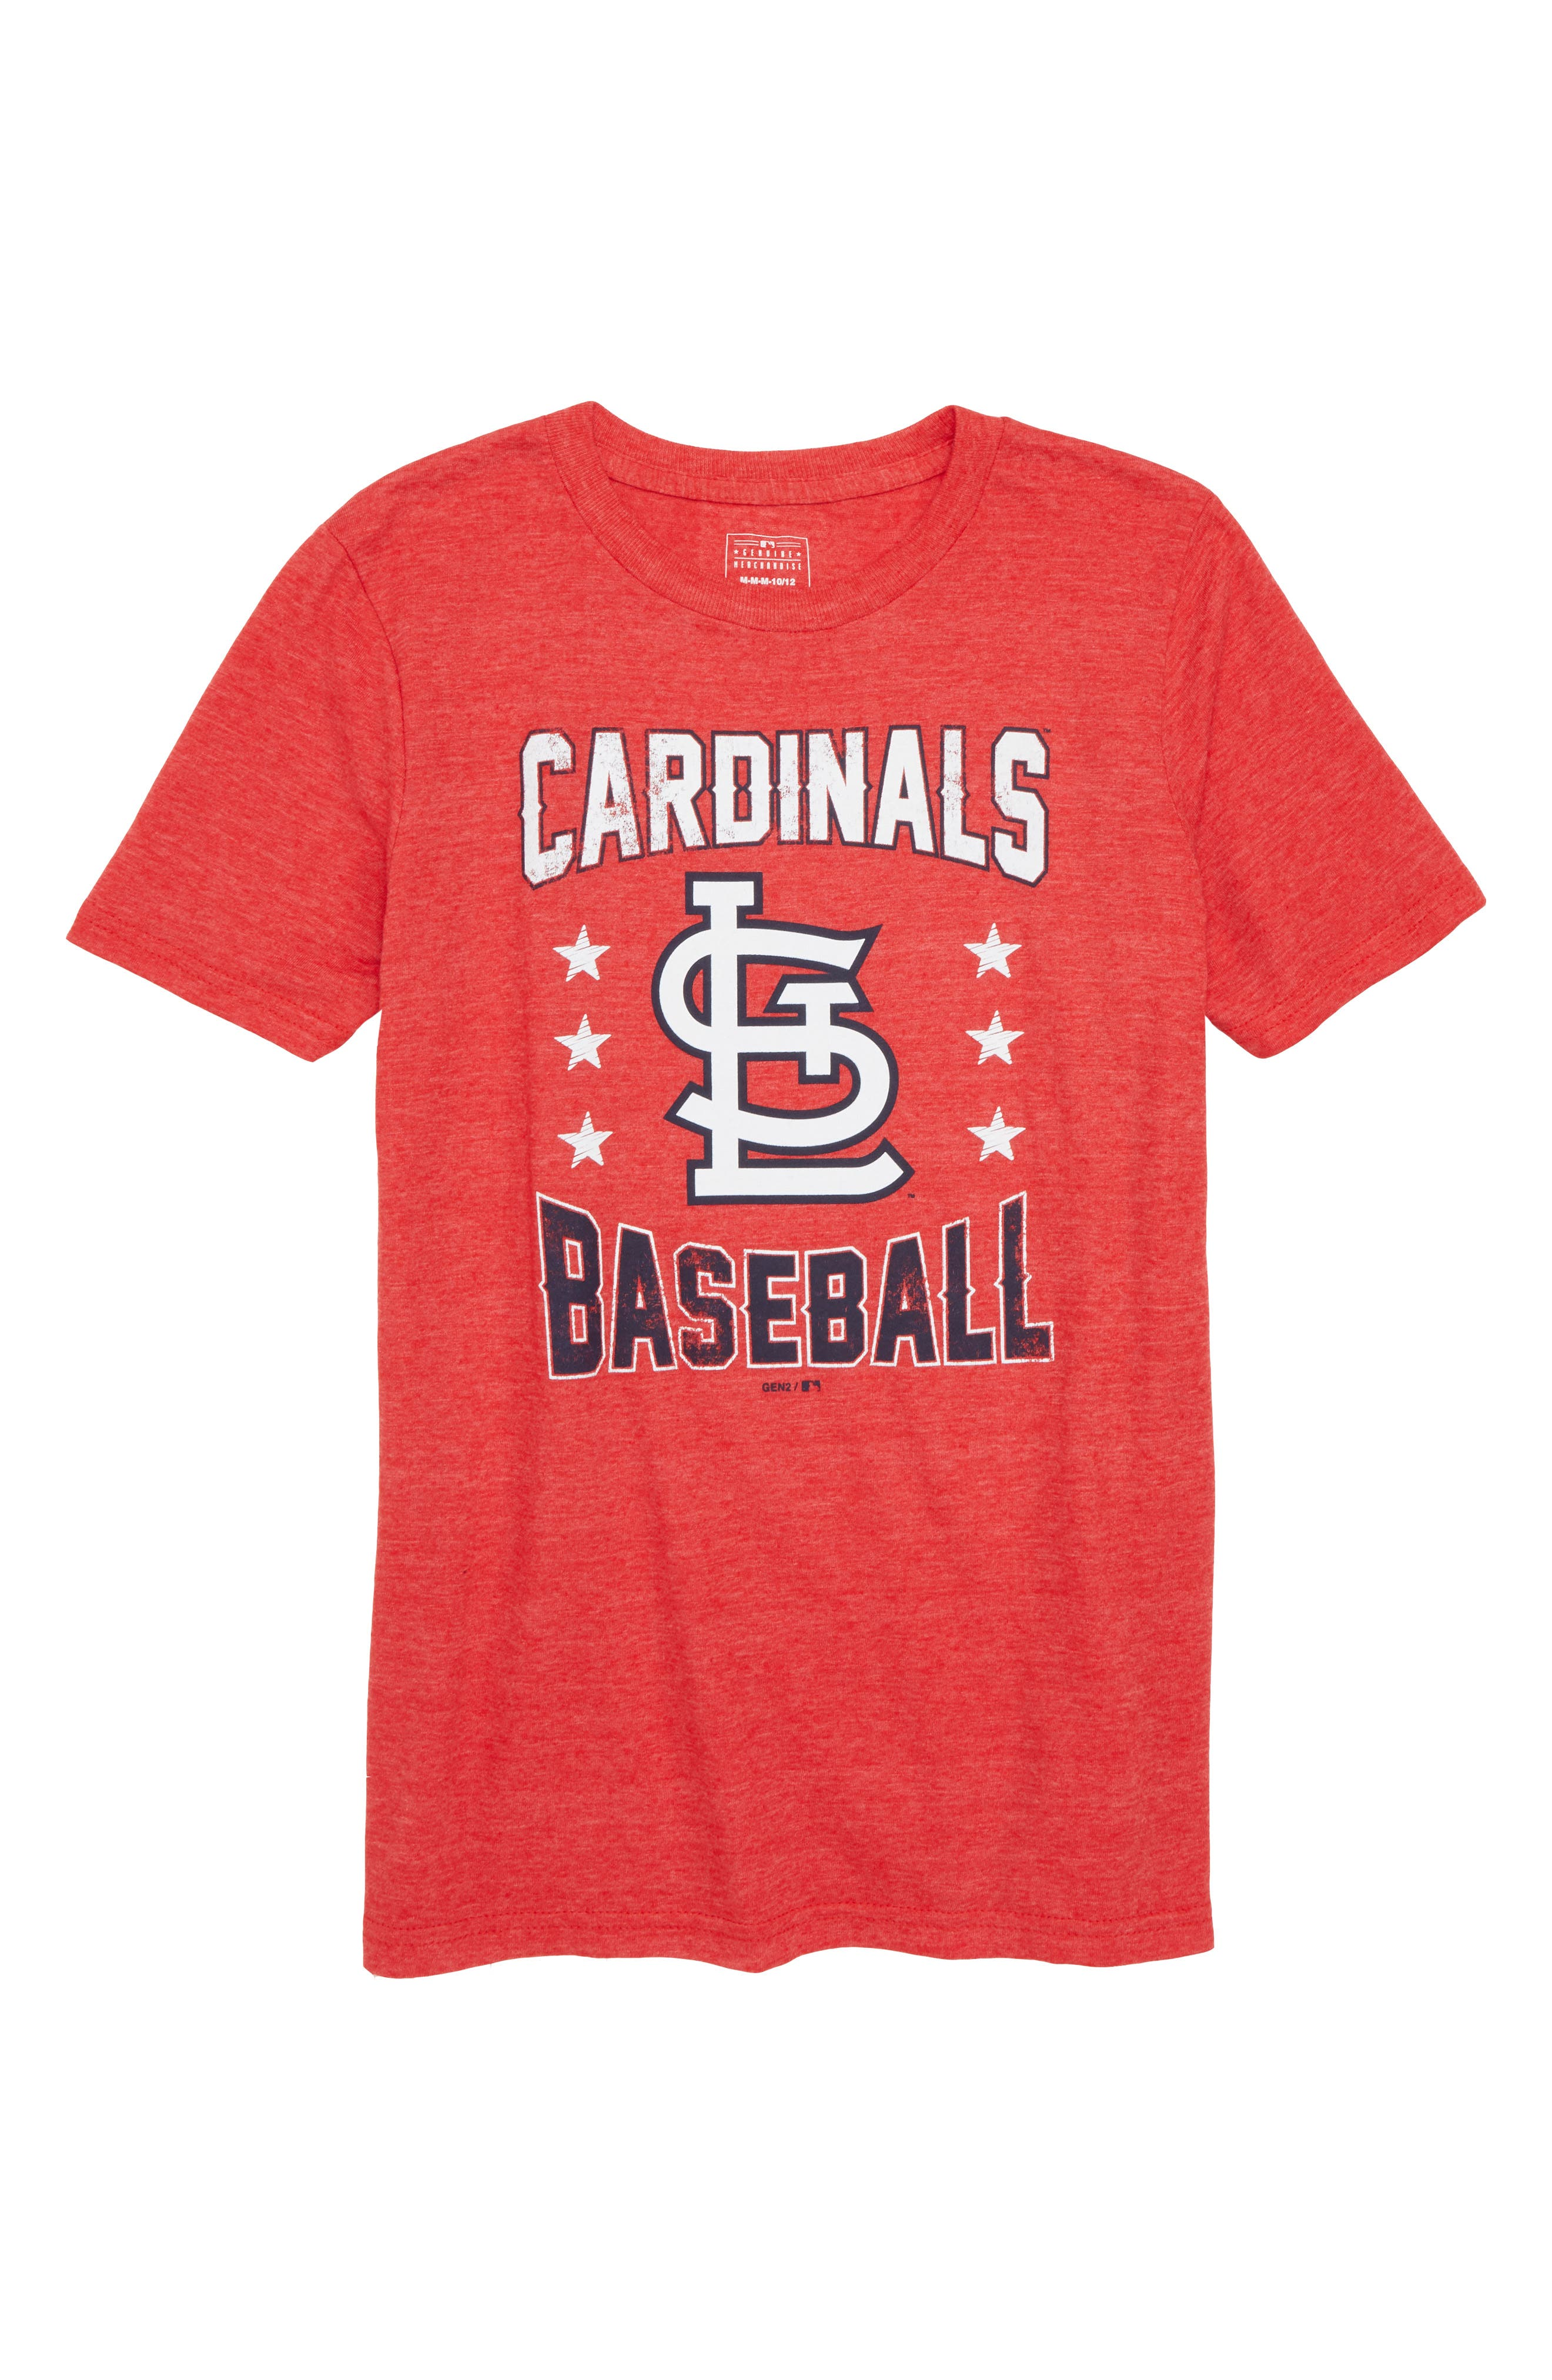 St. Louis Cardinals Triple Play T-Shirt,                             Main thumbnail 1, color,                             Red